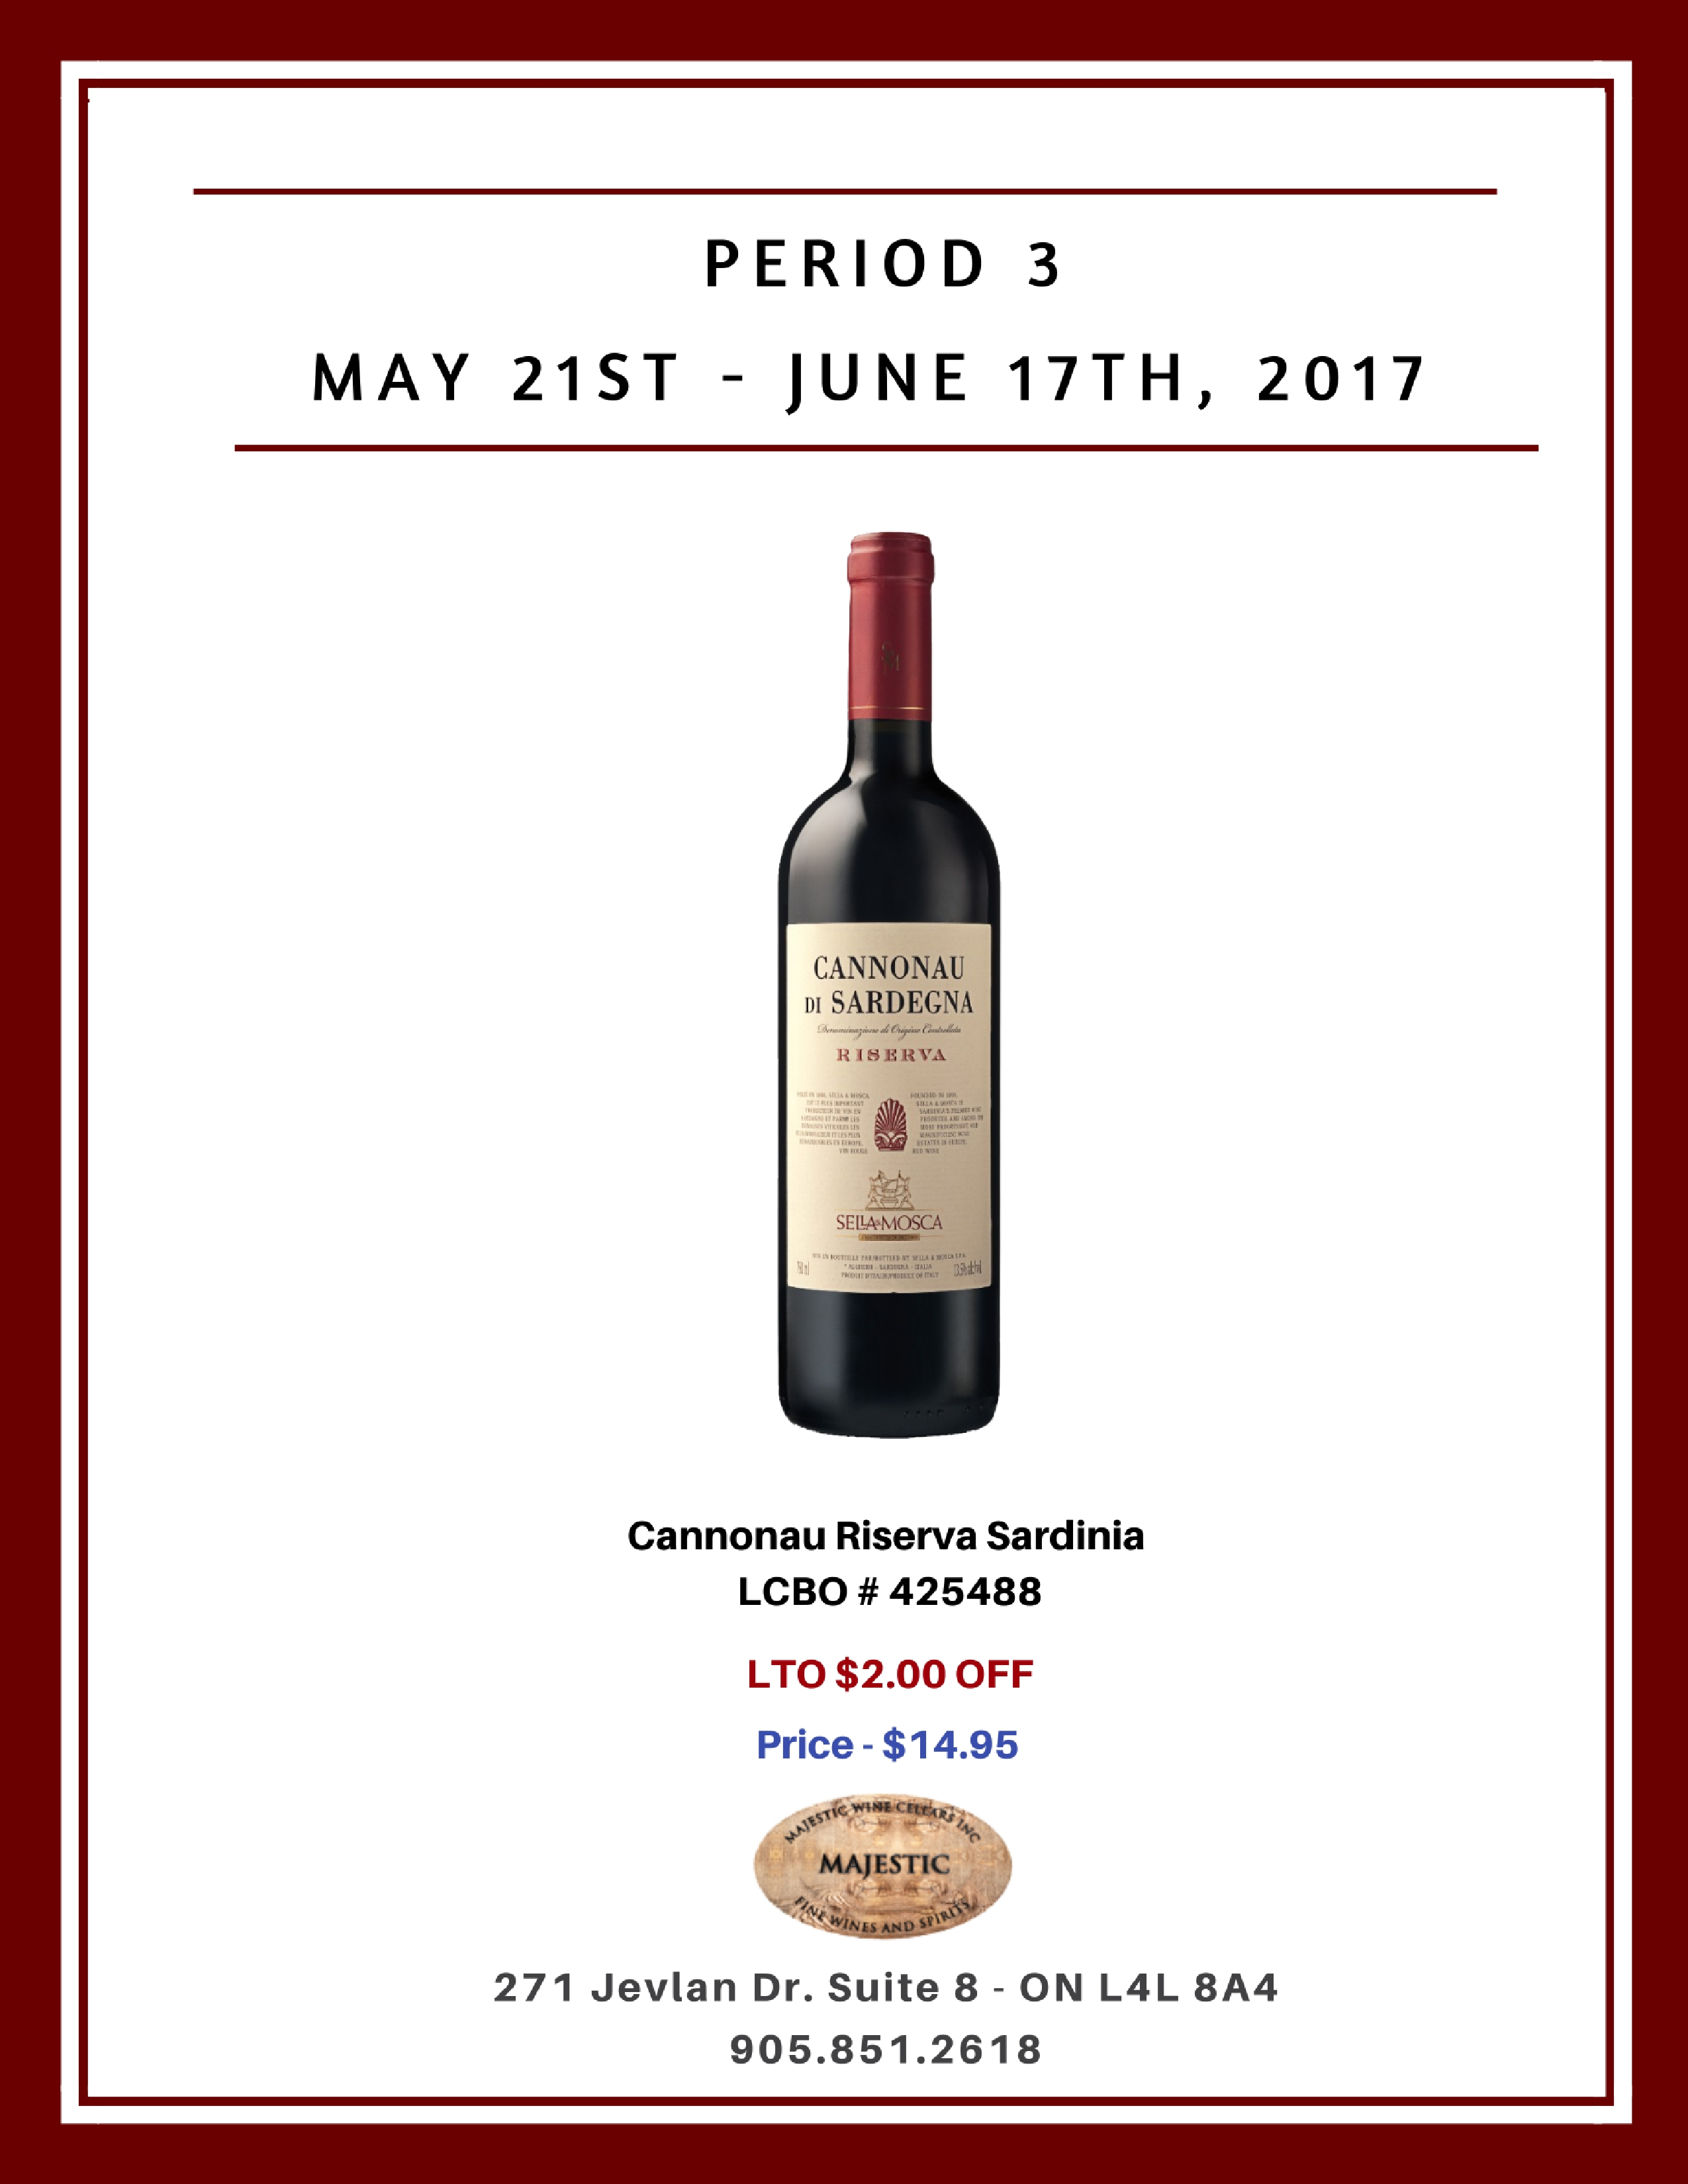 Period 3: May 21st - June 17th, 2017 Promotion